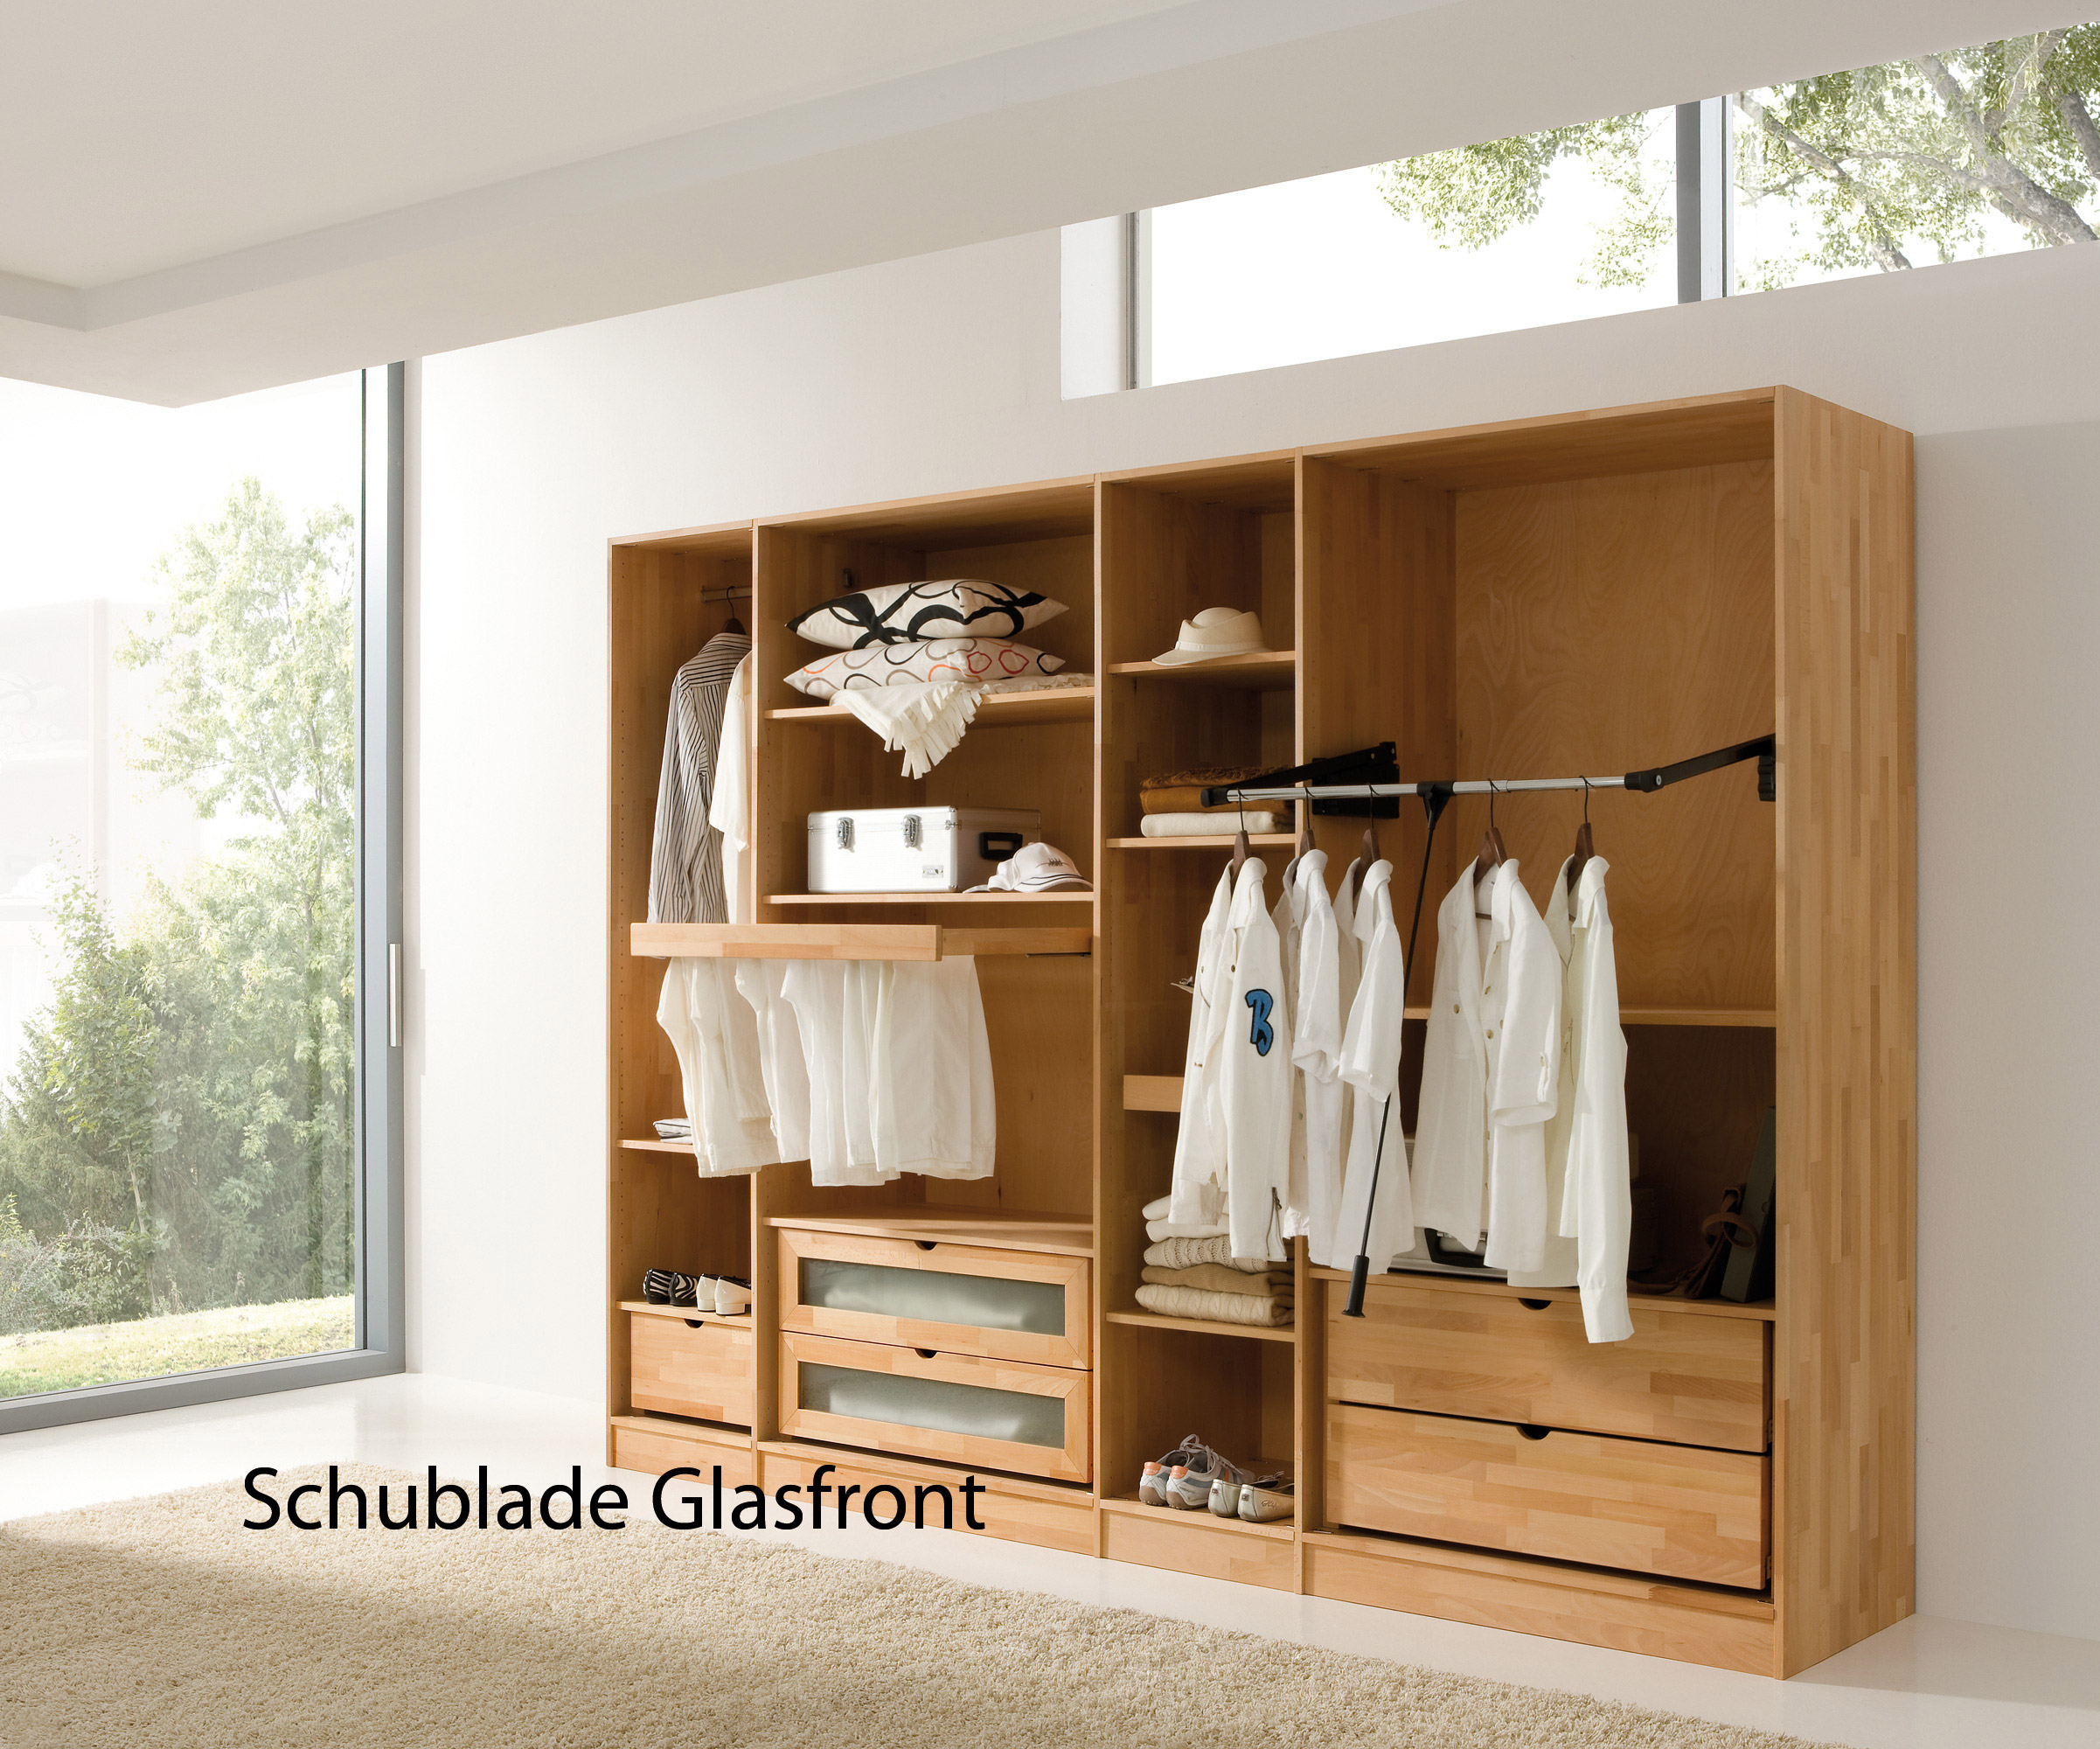 schublade f r kleiderschrank mit einsatz aus satiniertem glas purenature. Black Bedroom Furniture Sets. Home Design Ideas